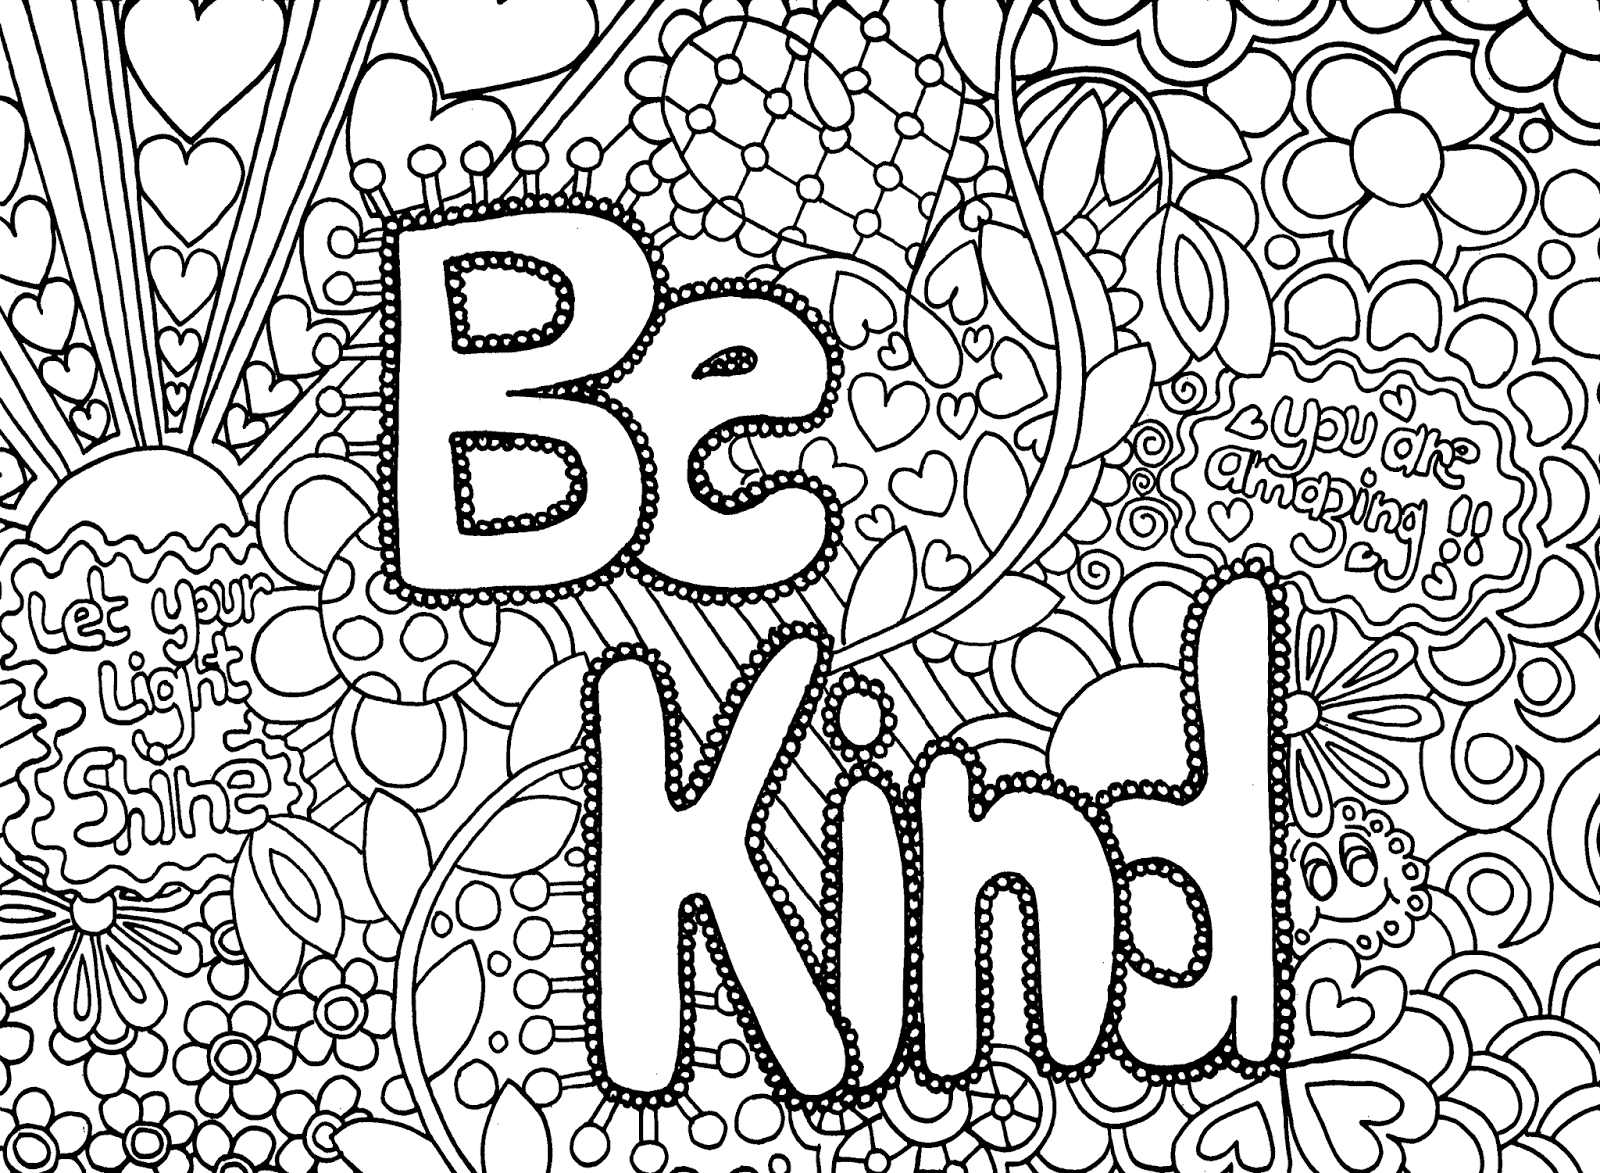 printable pictures to color for adults free printable abstract coloring pages for adults color printable for pictures adults to